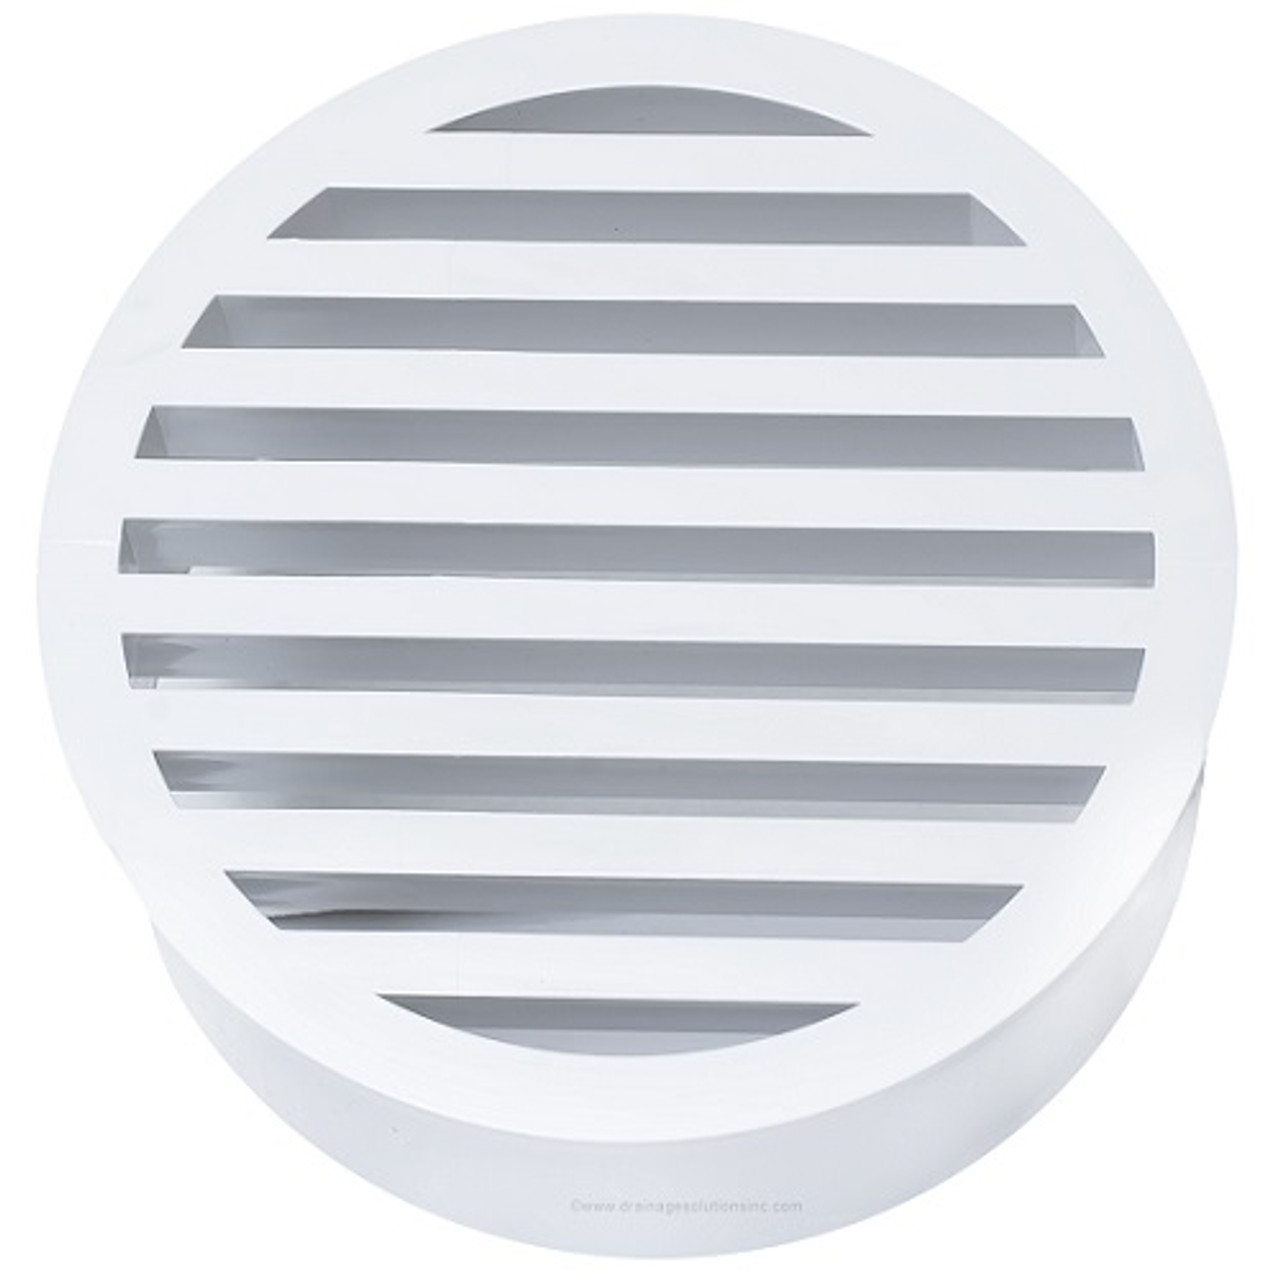 8 Quot Pvc Sdr35 Drain Grate Sp White The Drainage